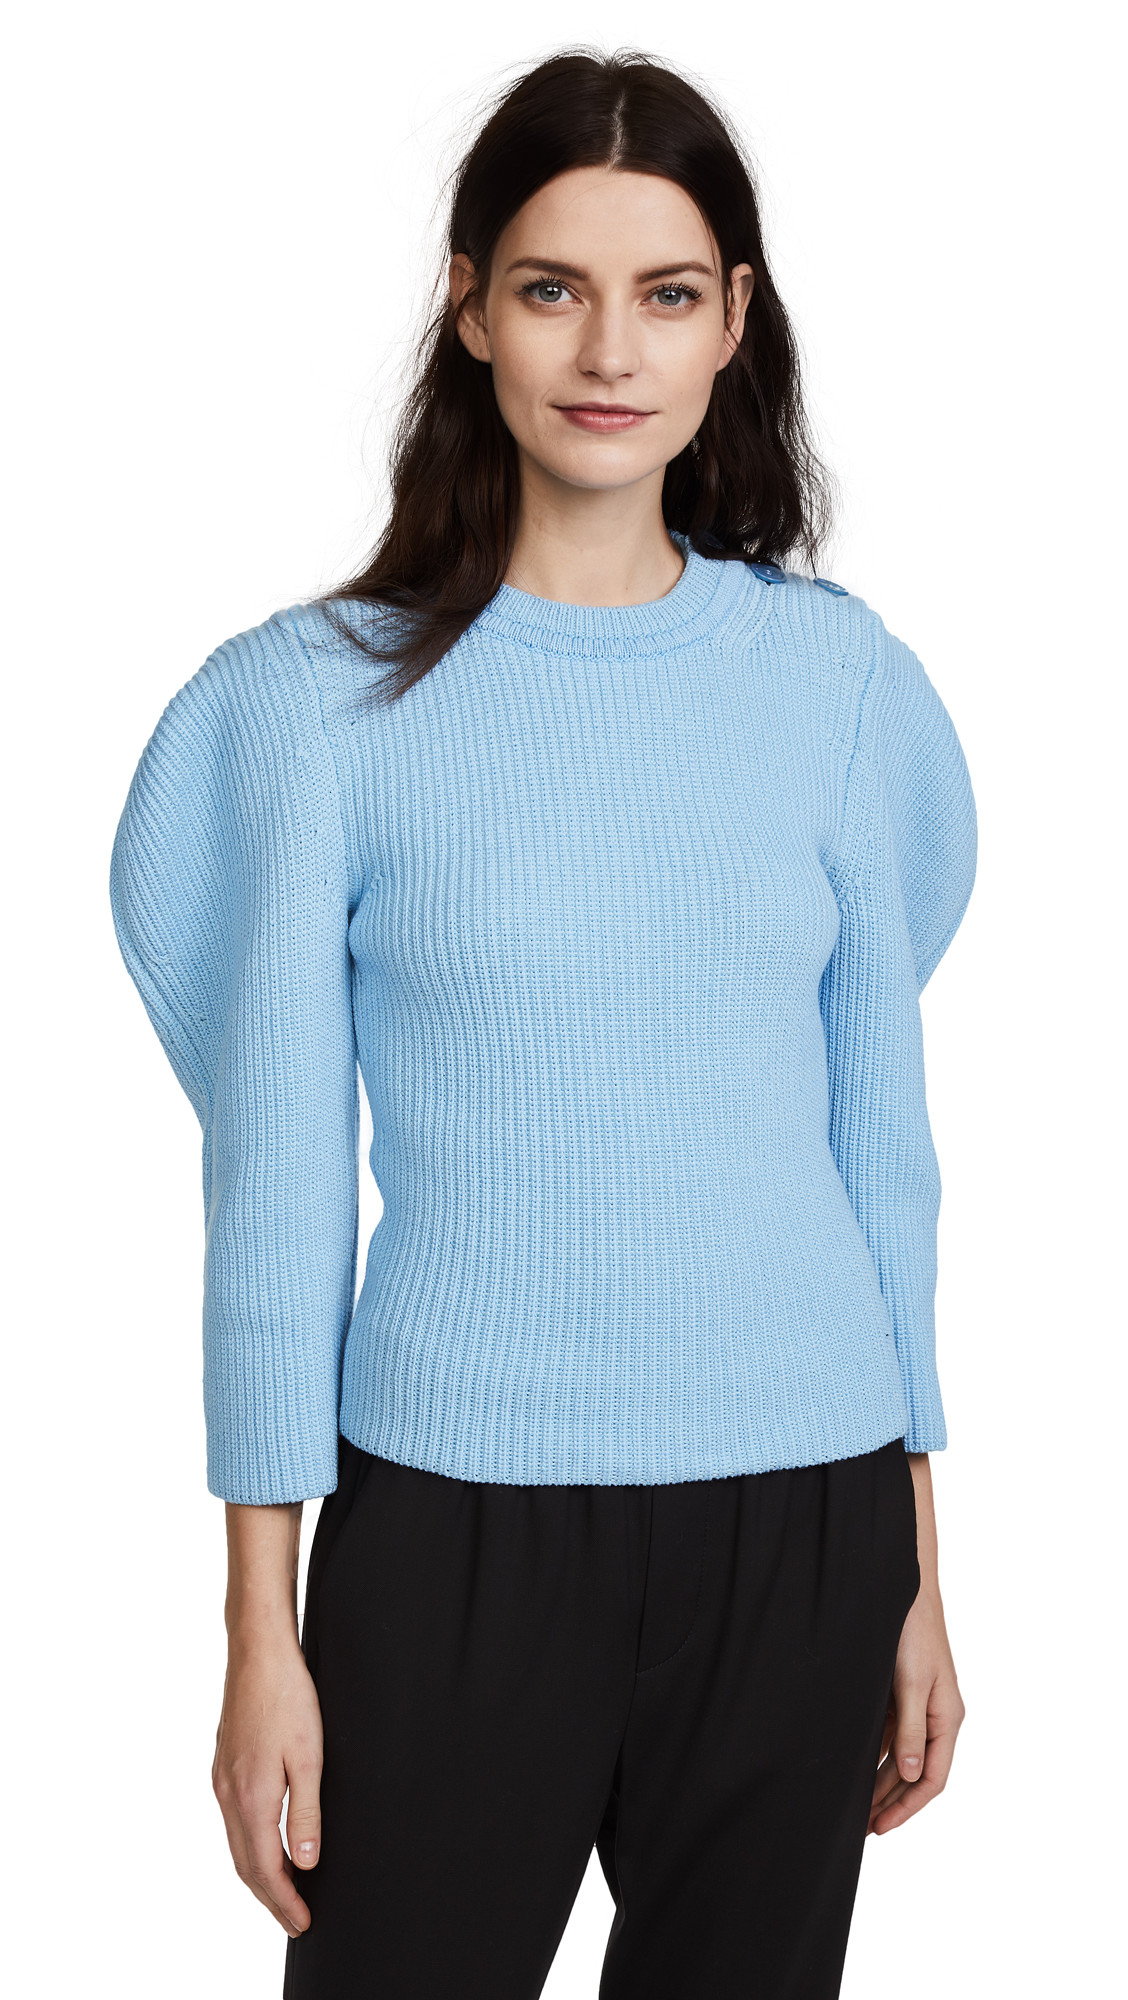 Nina Ricci Shoulder Detail Sweater - Turquoise